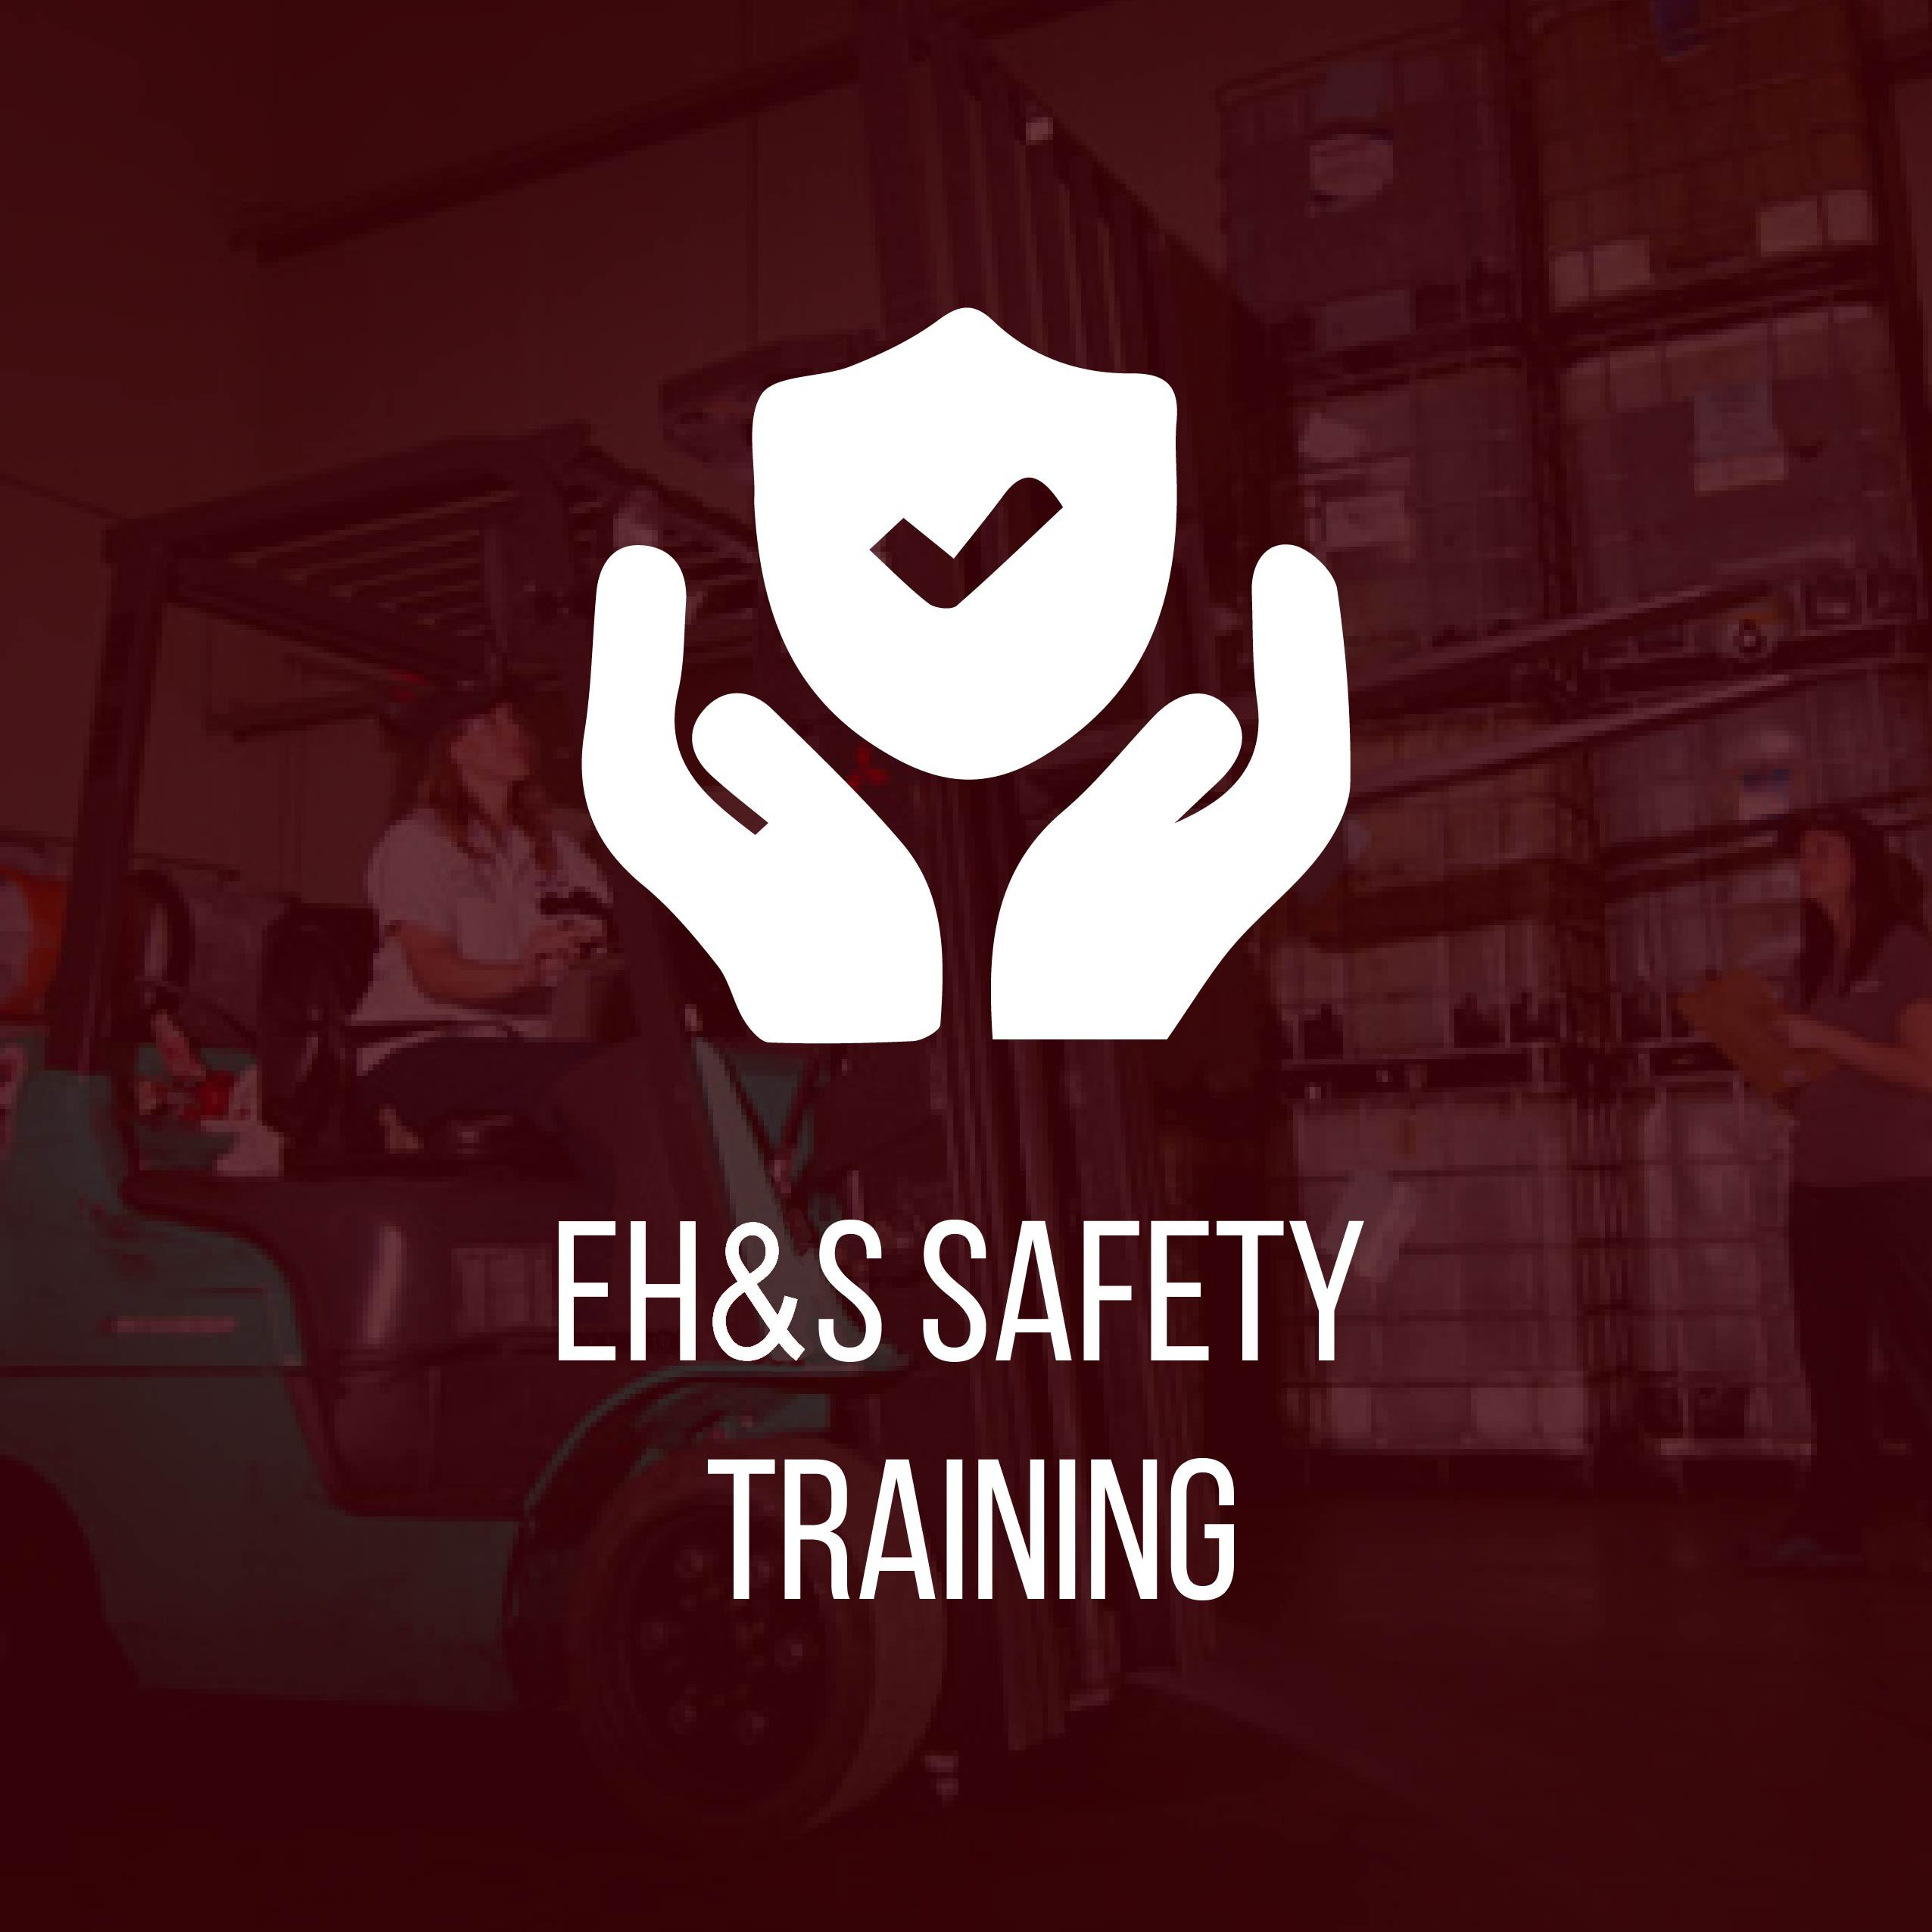 EHS Safety Training